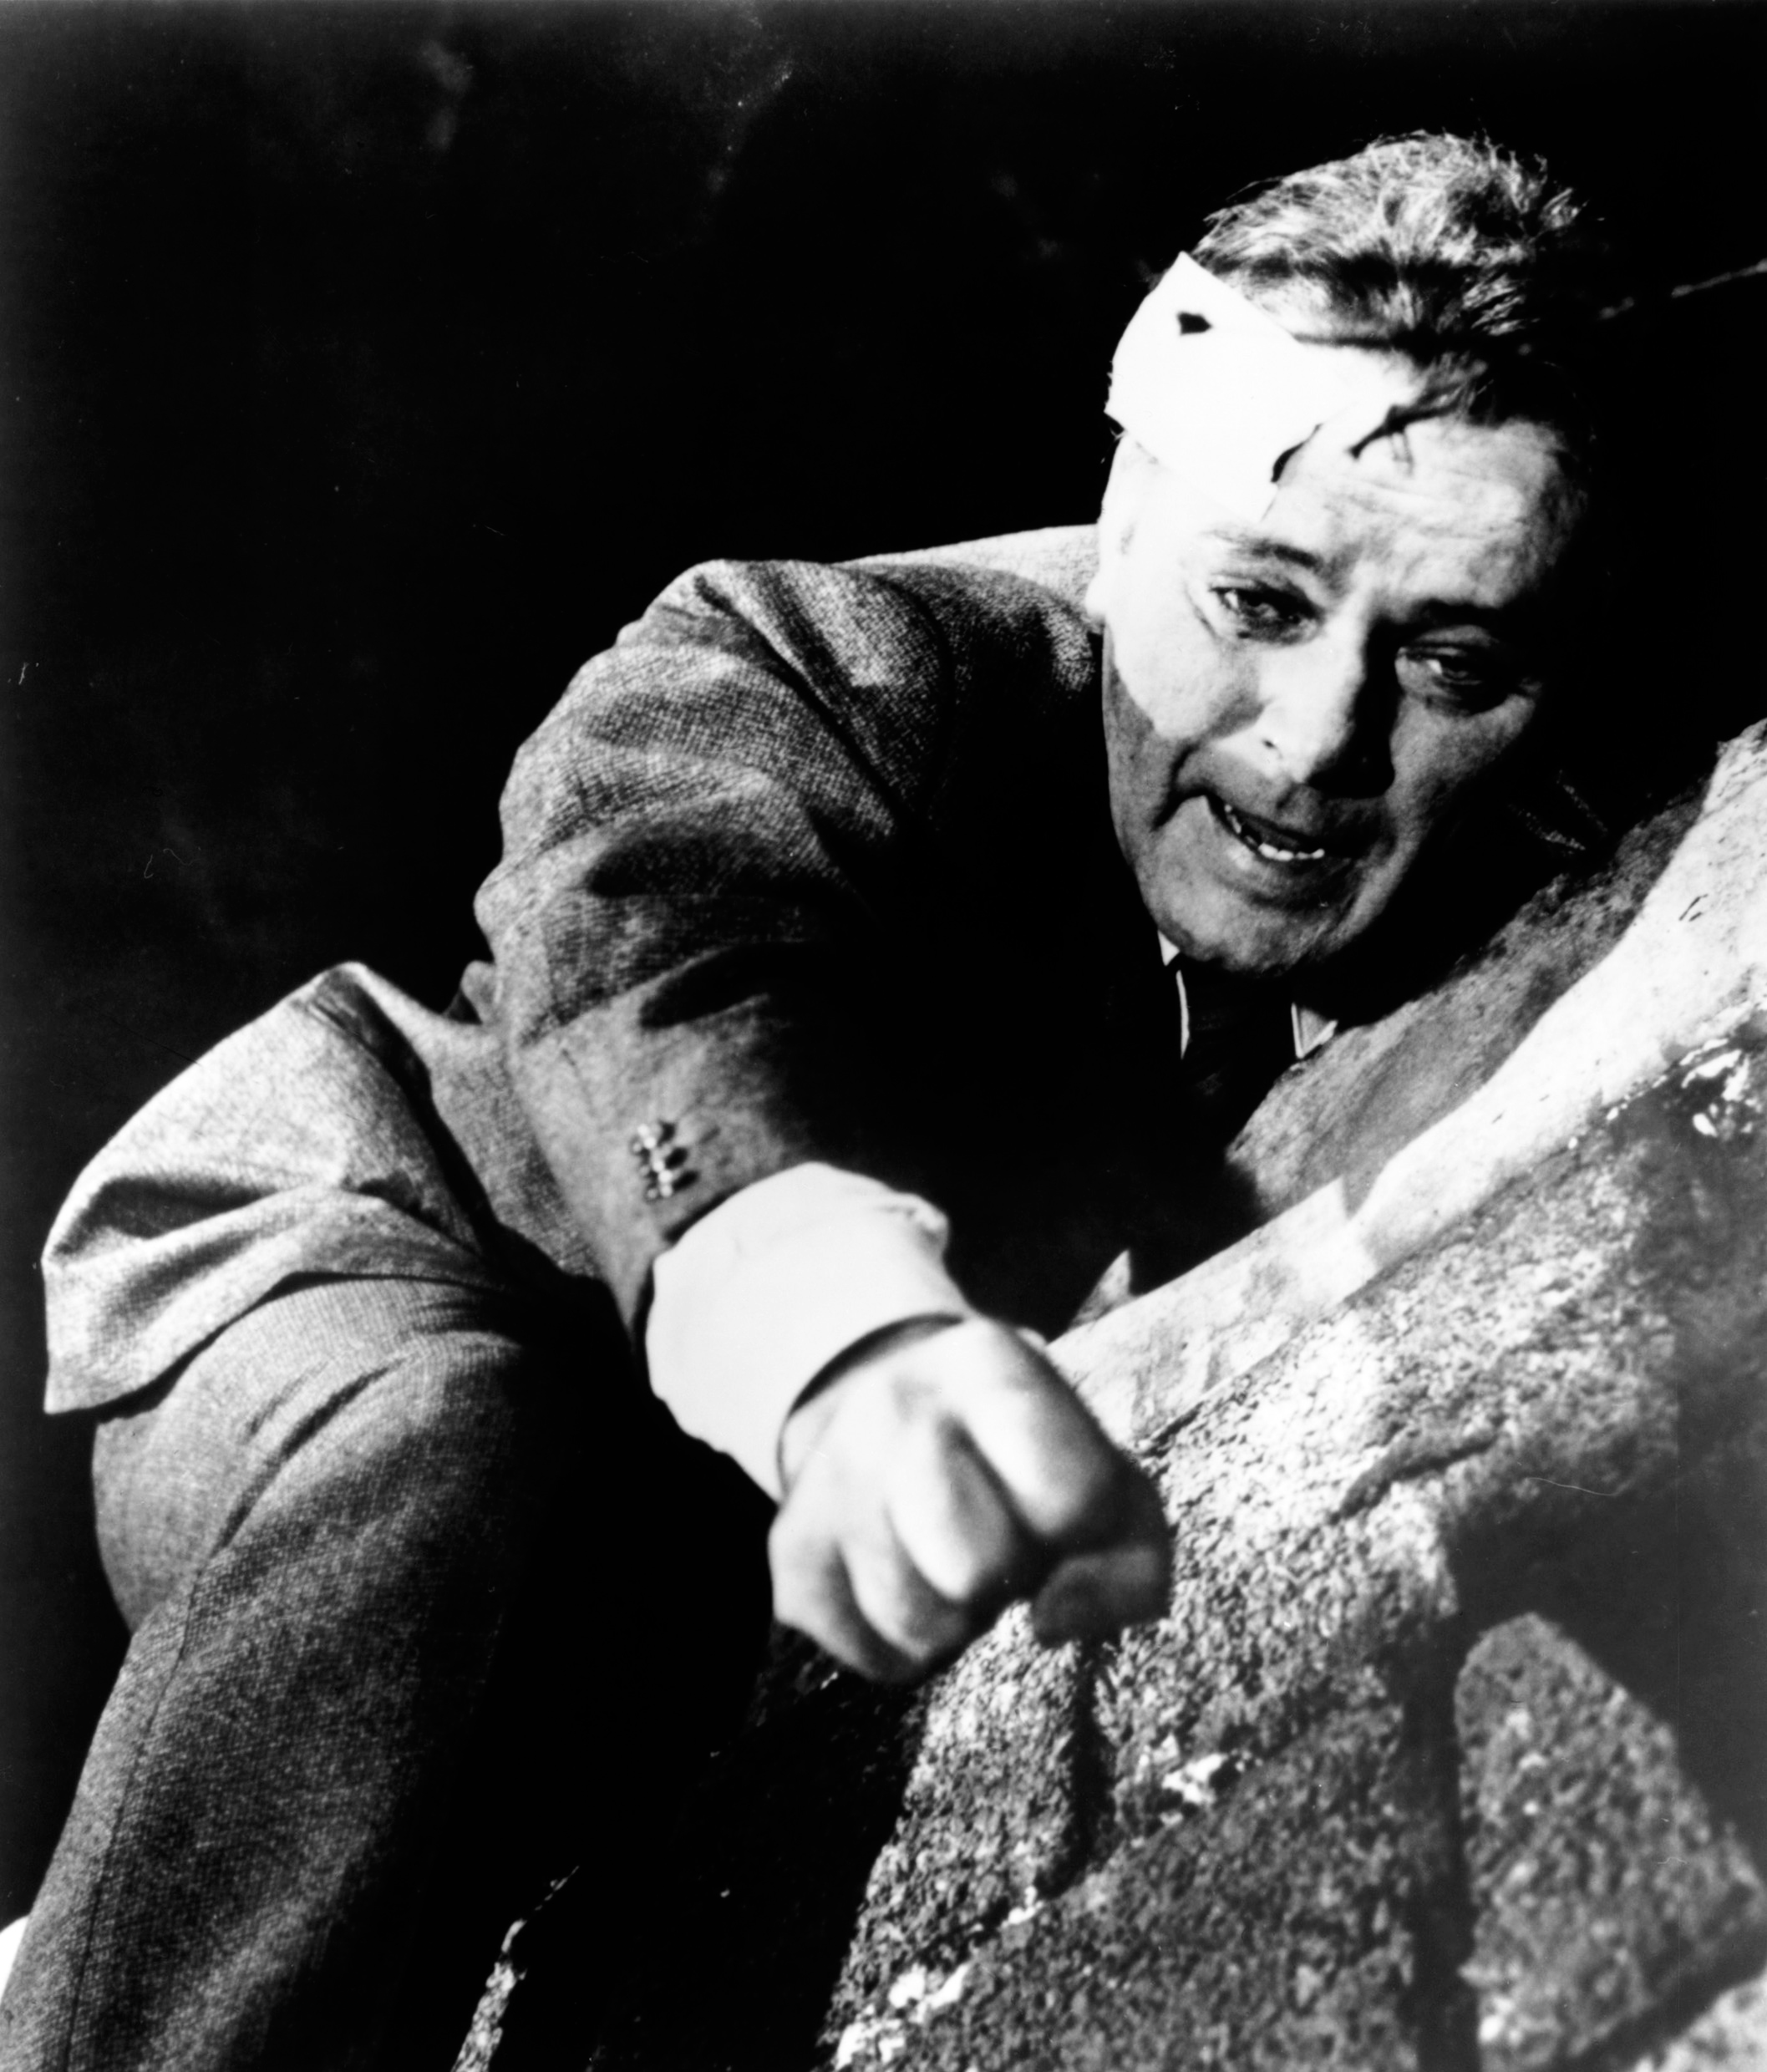 Richard Burton as Alec Leamas in The Spy Who Came in from the Cold, 1965